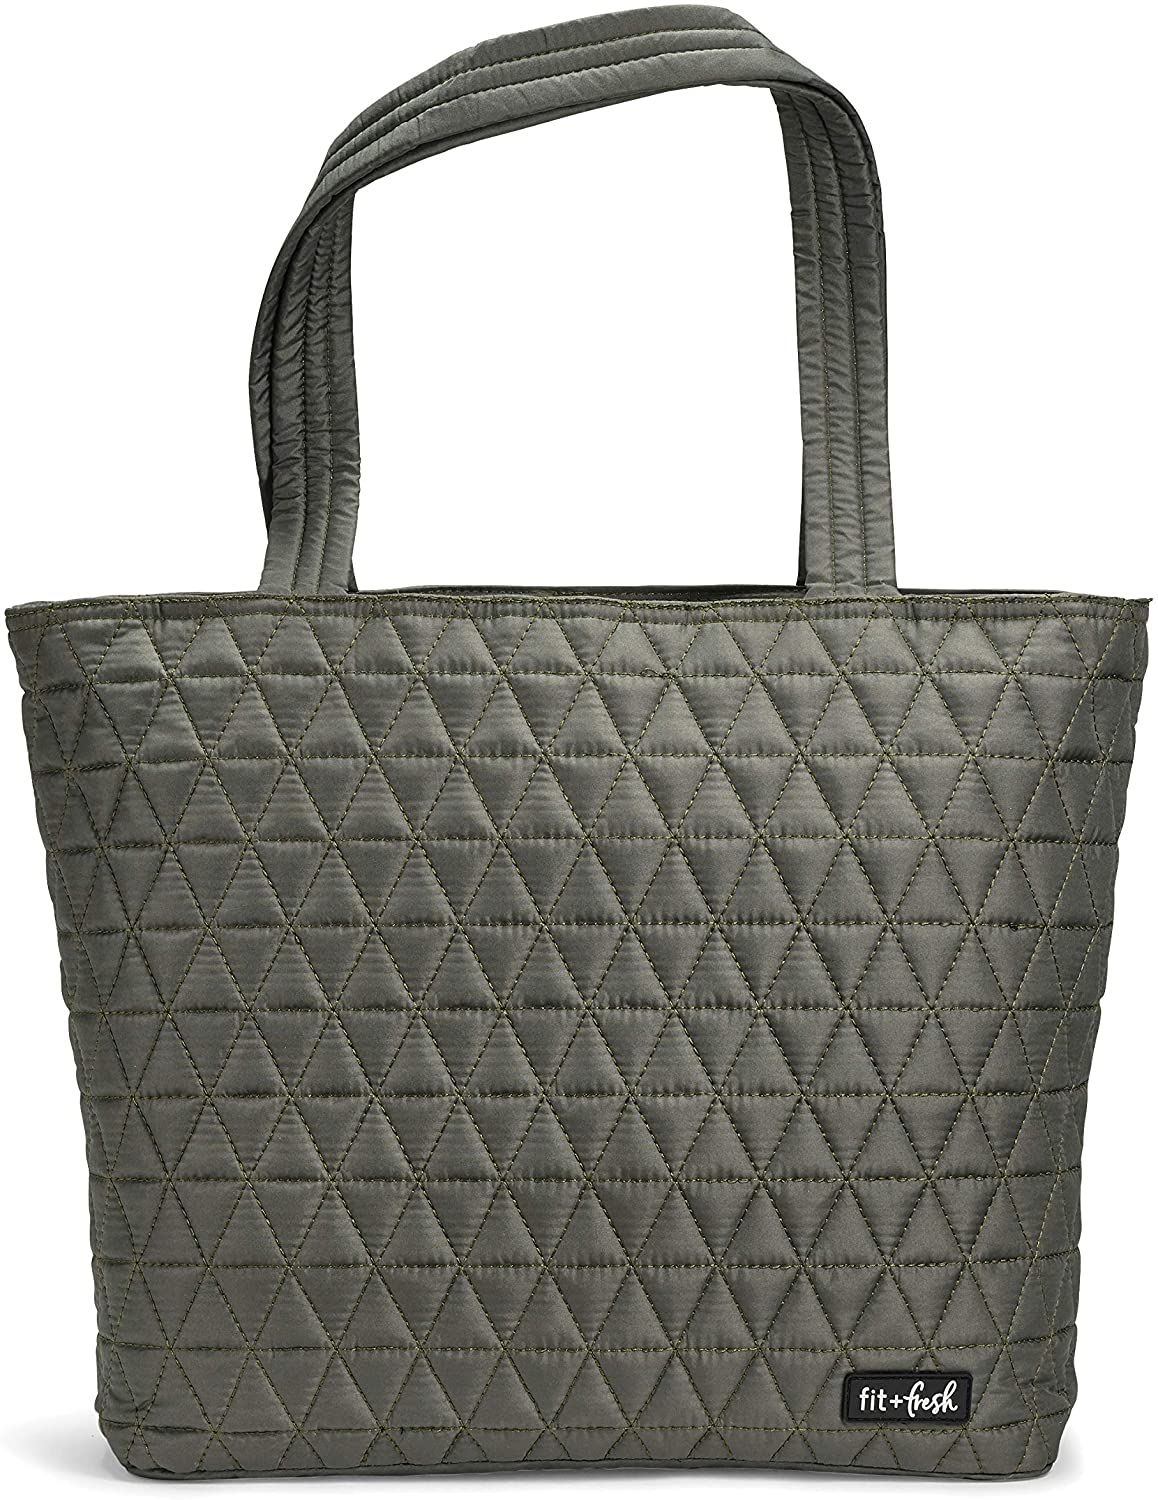 Fit & Fresh Deluxe 2 in 1 Quilted Tote Bag with Insulated Lunch Compartment, Professional Tote for Work, Olive Green